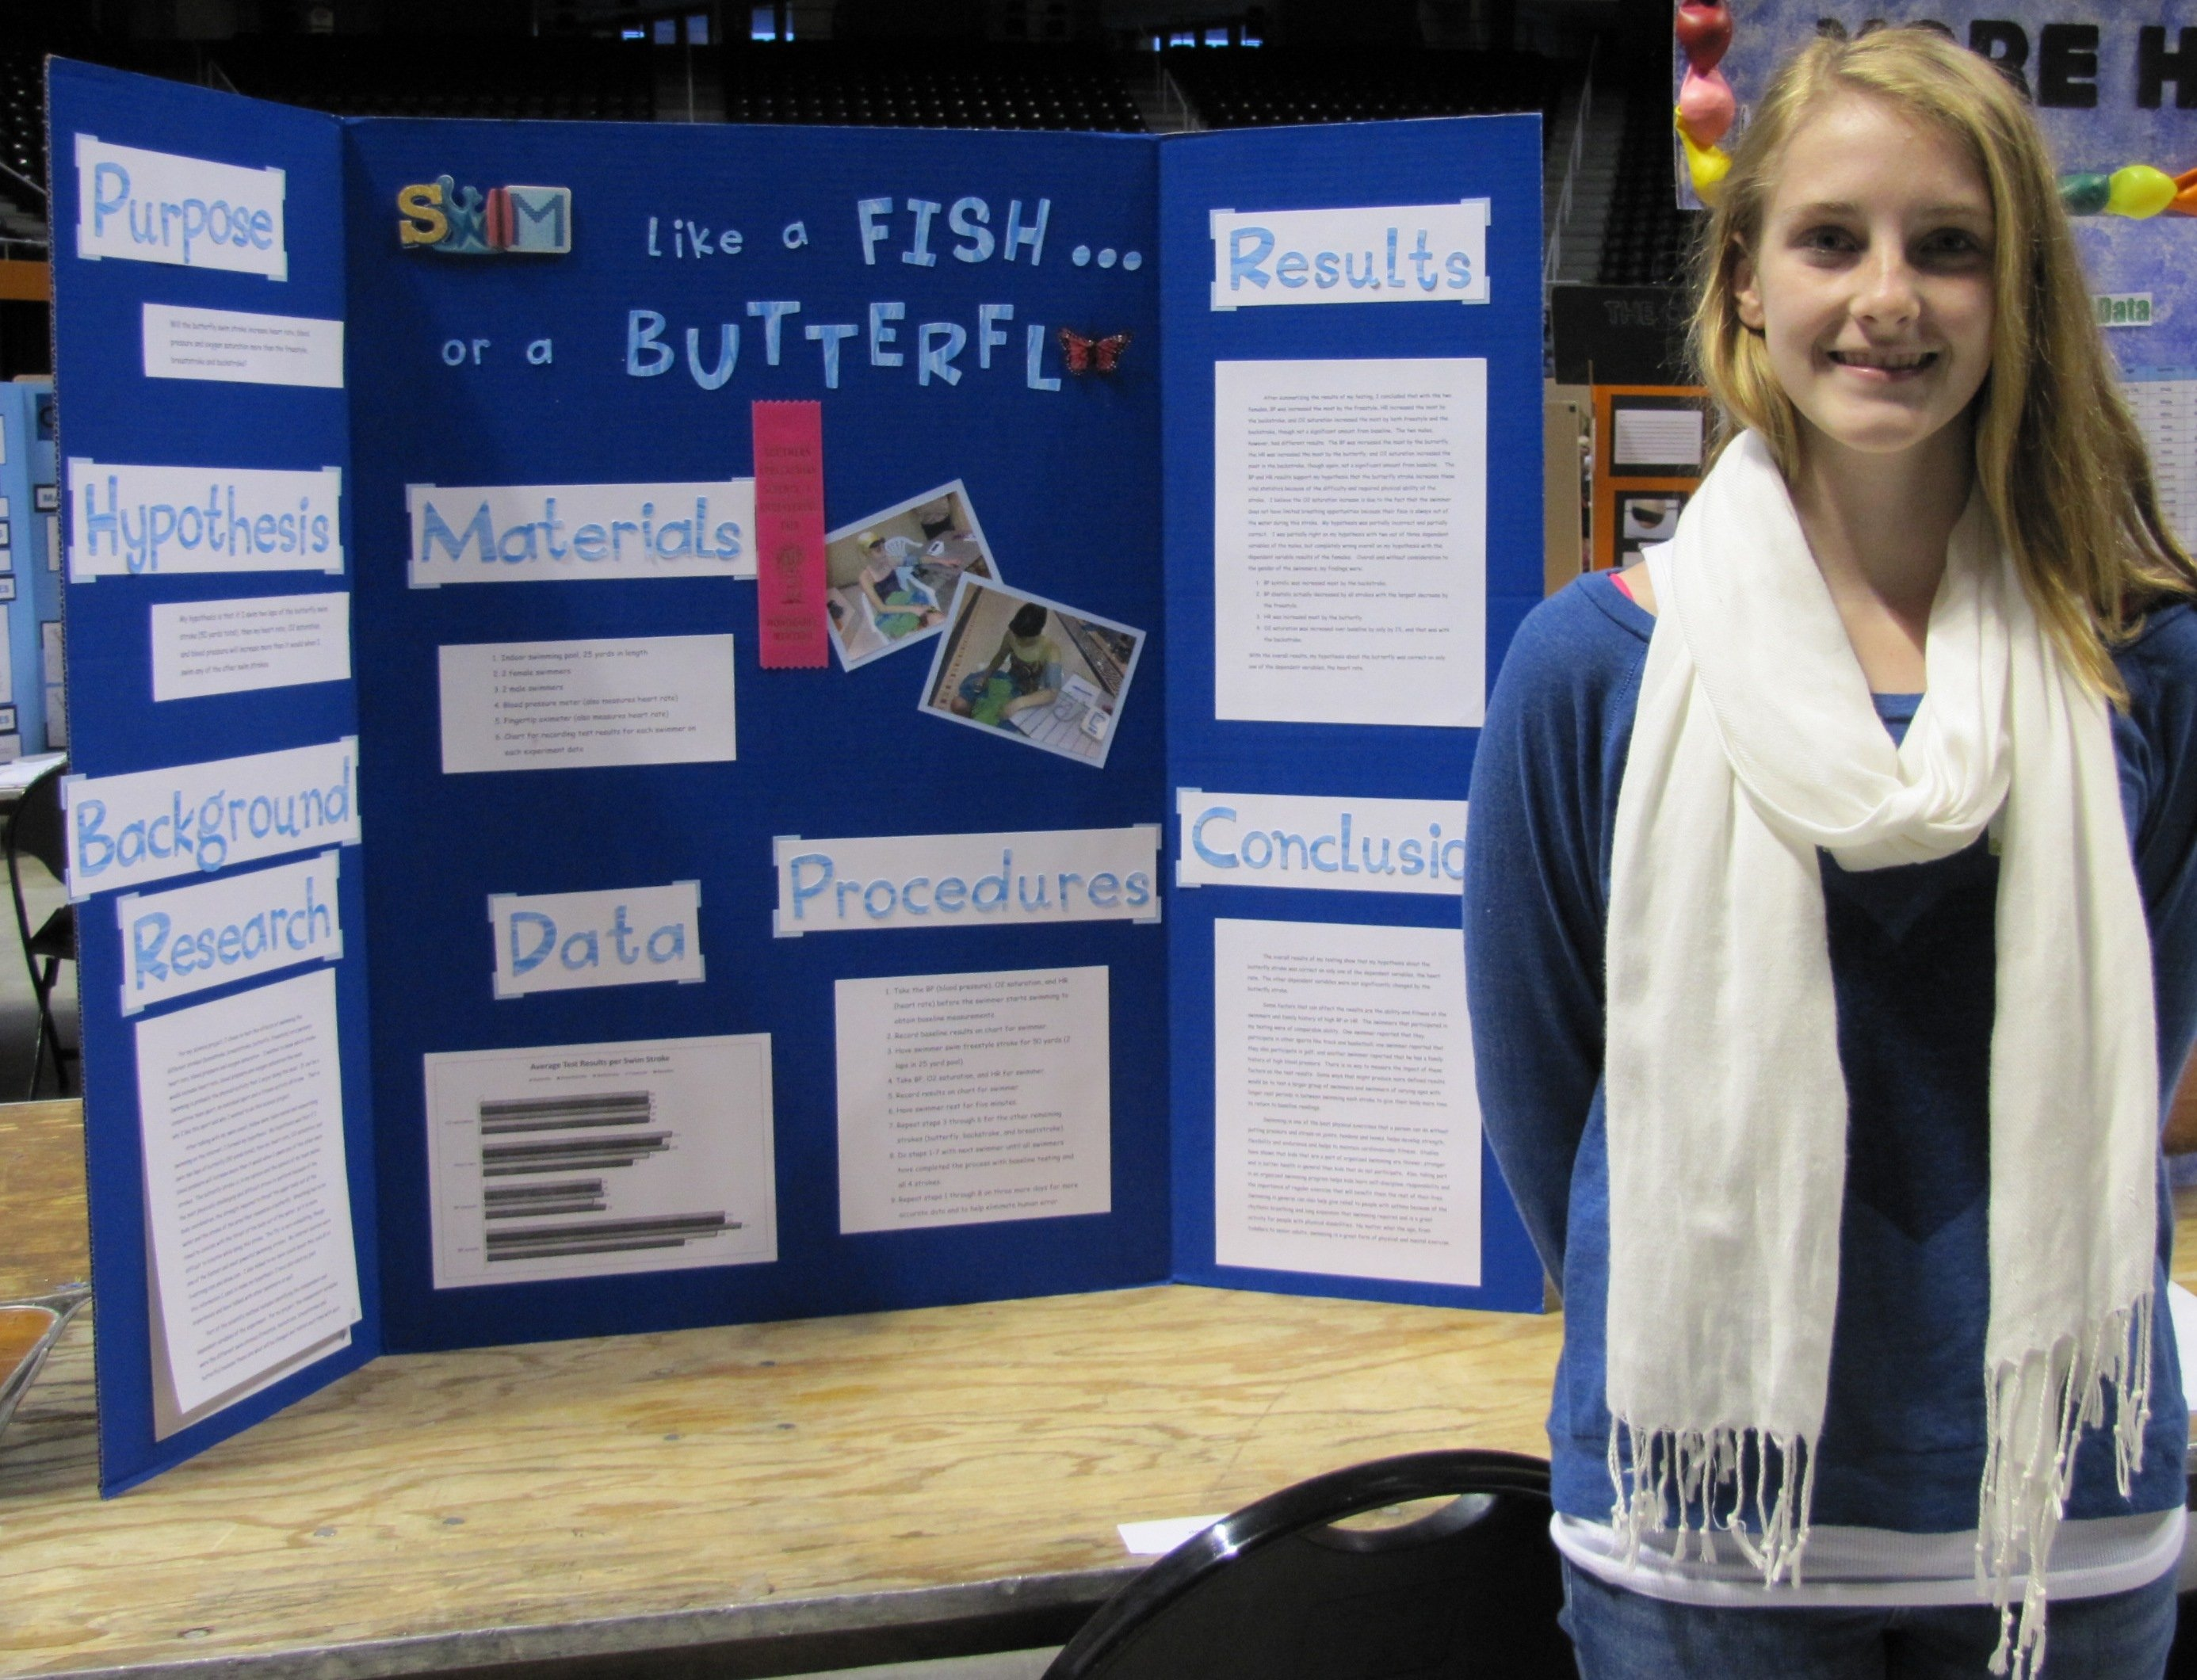 10 Stunning Award Winning Science Fair Ideas young scientists merit nimbios science fair prizes for swimmer 9 2021